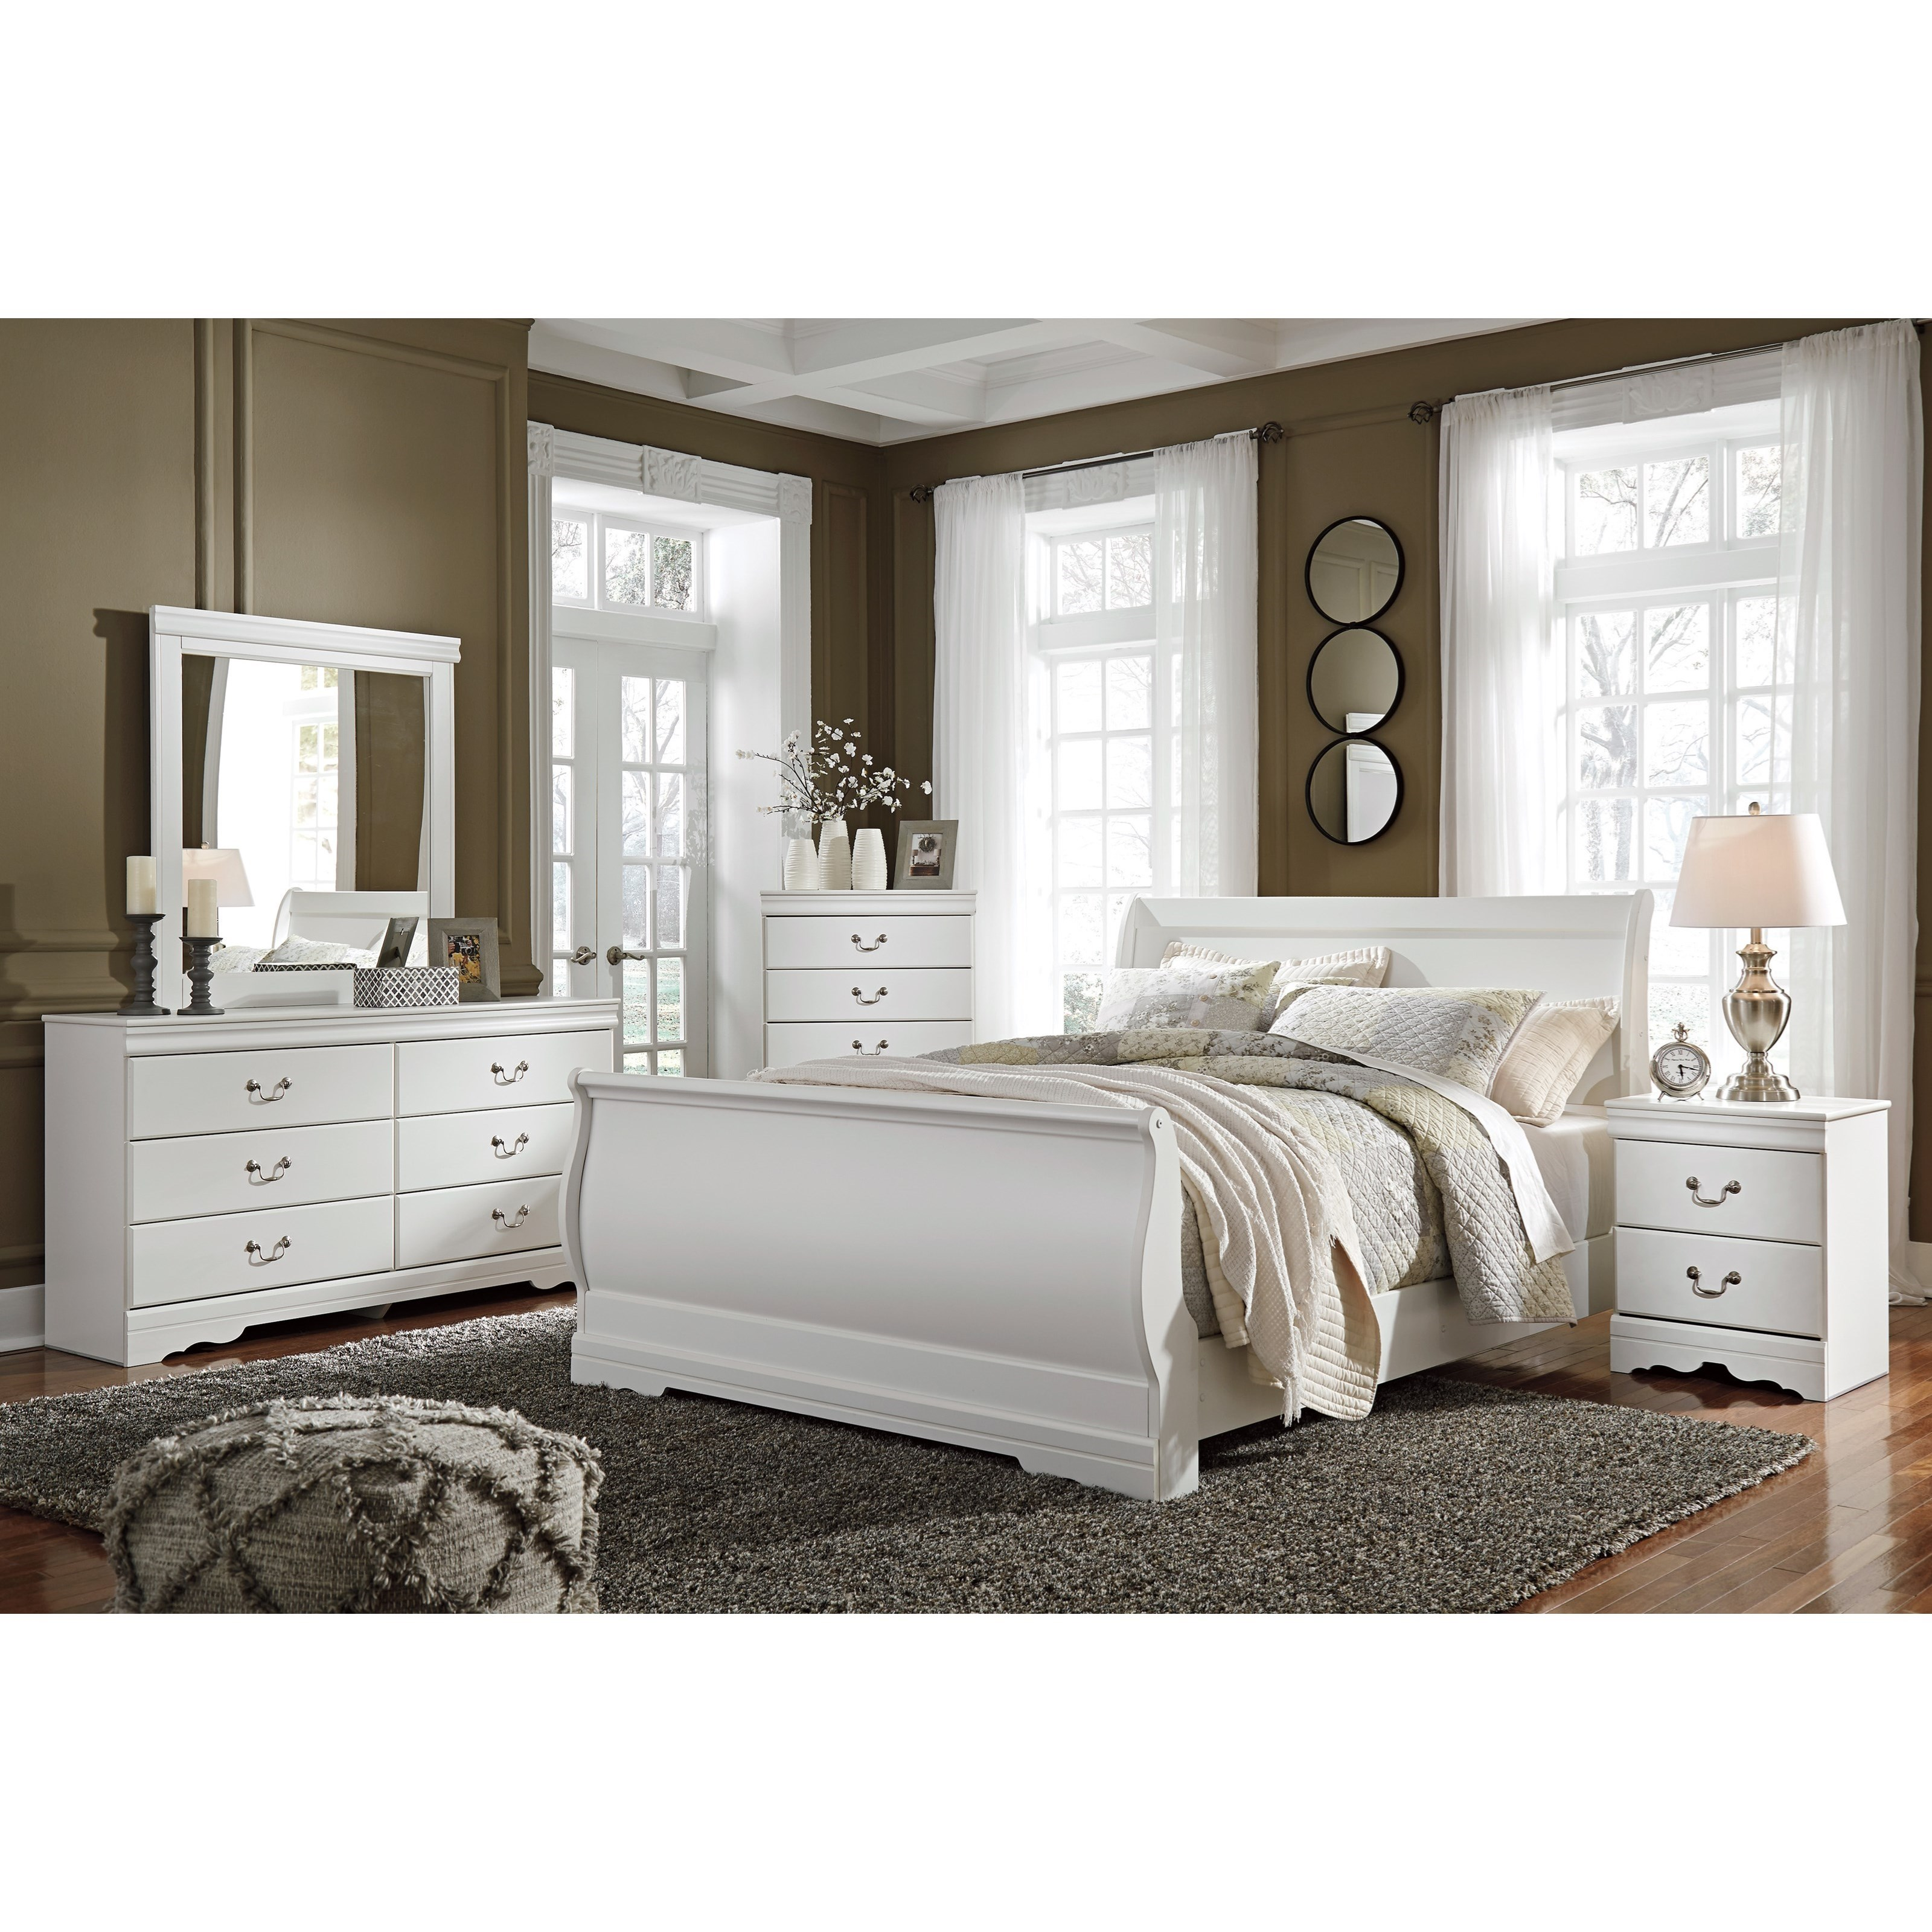 Anarasia Queen Bedroom Group by Ashley (Signature Design) at Johnny Janosik